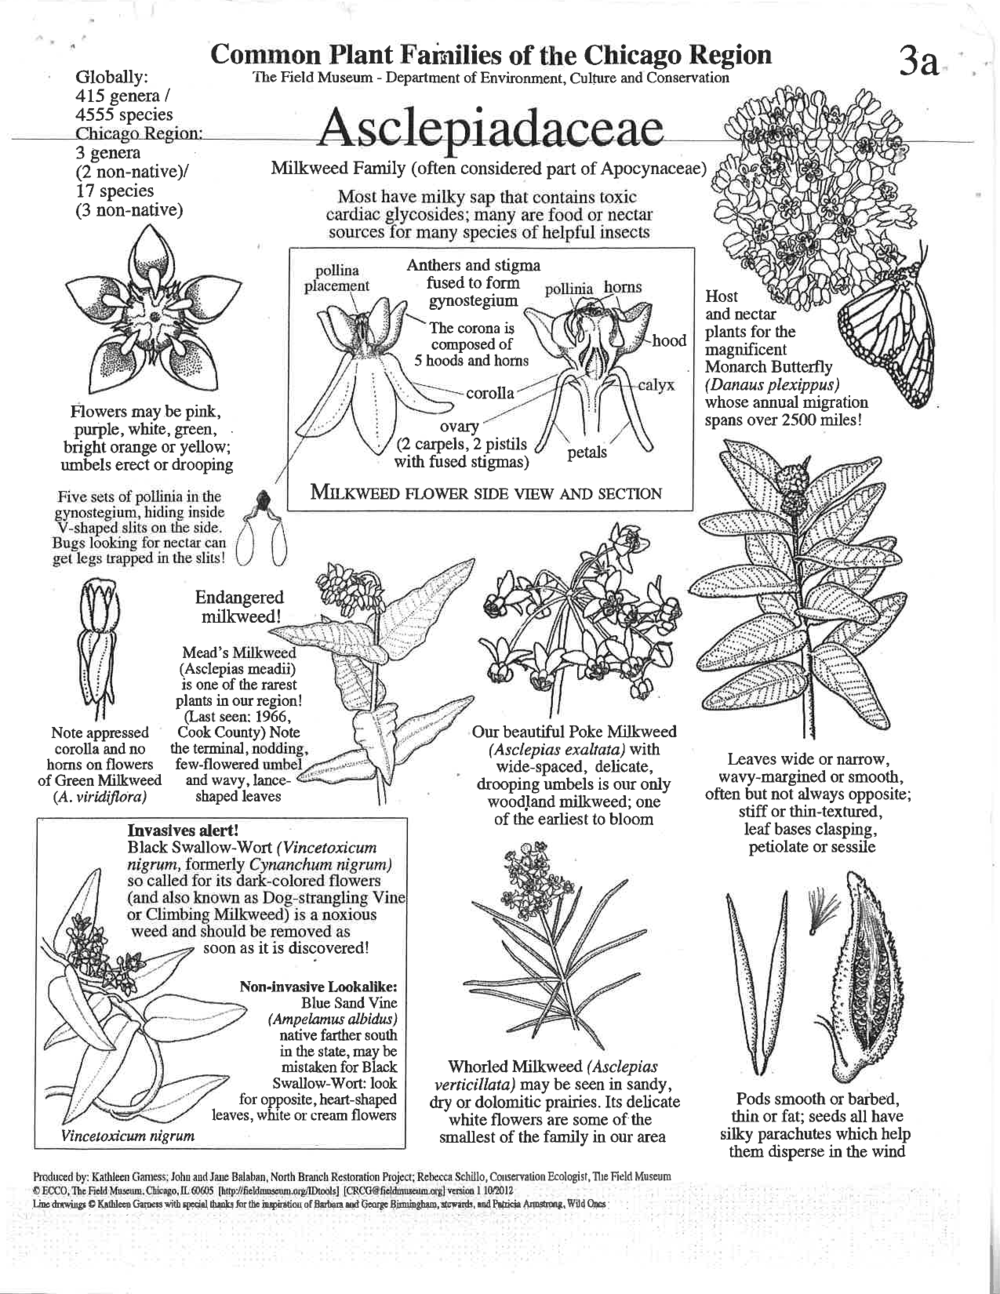 Poster of Common Plant Families of the Chicago Region